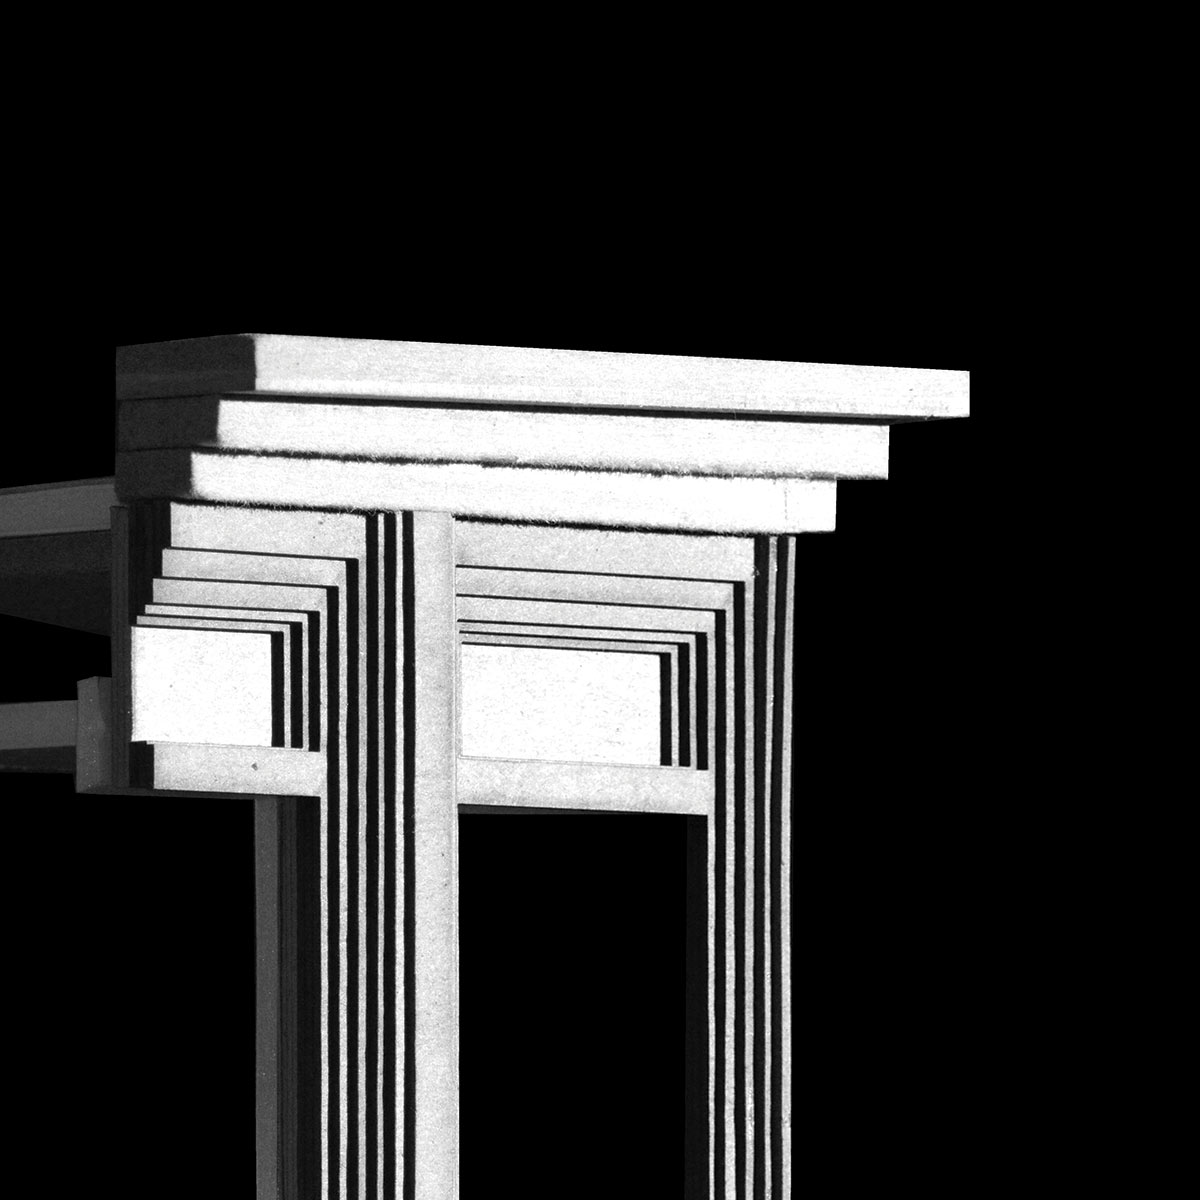 black and white image of what looks to be columns